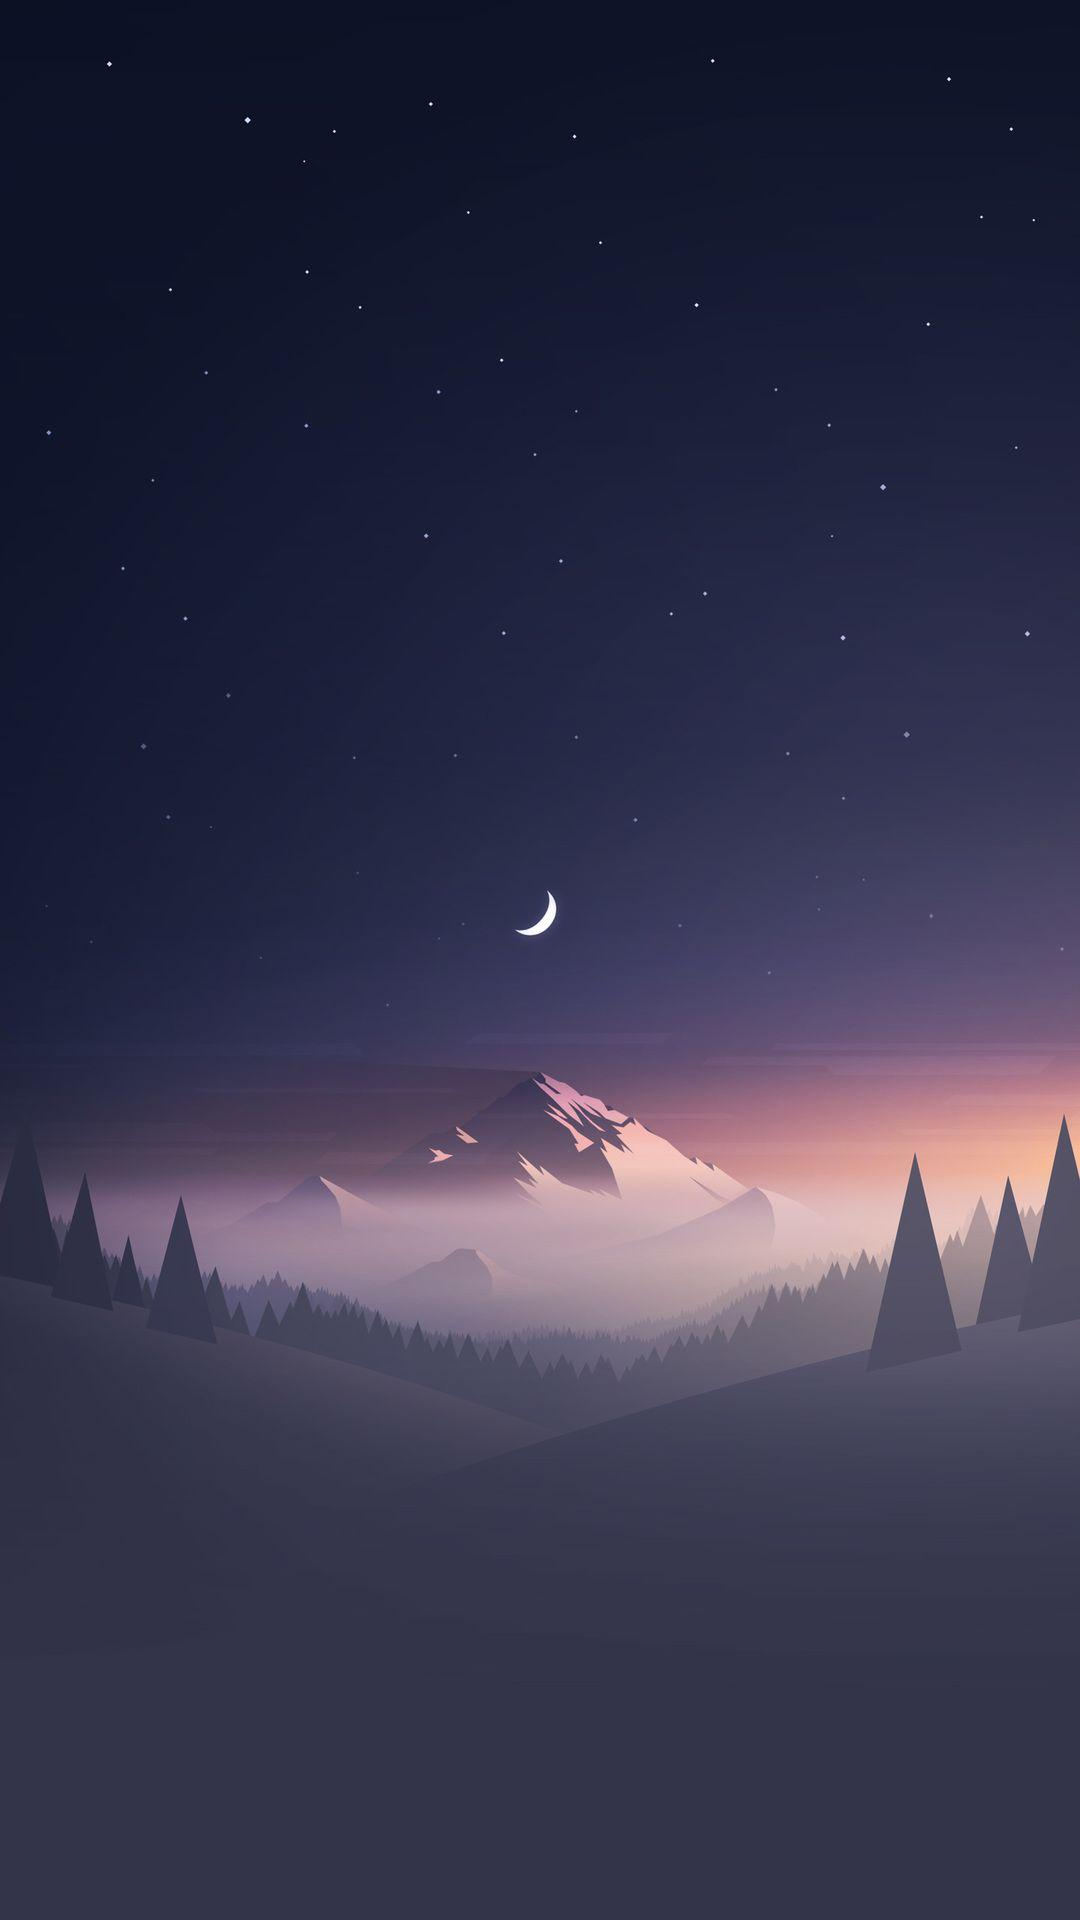 Mountains Moon Trees Minimalism Hd Wallpaper - [1080x1920]